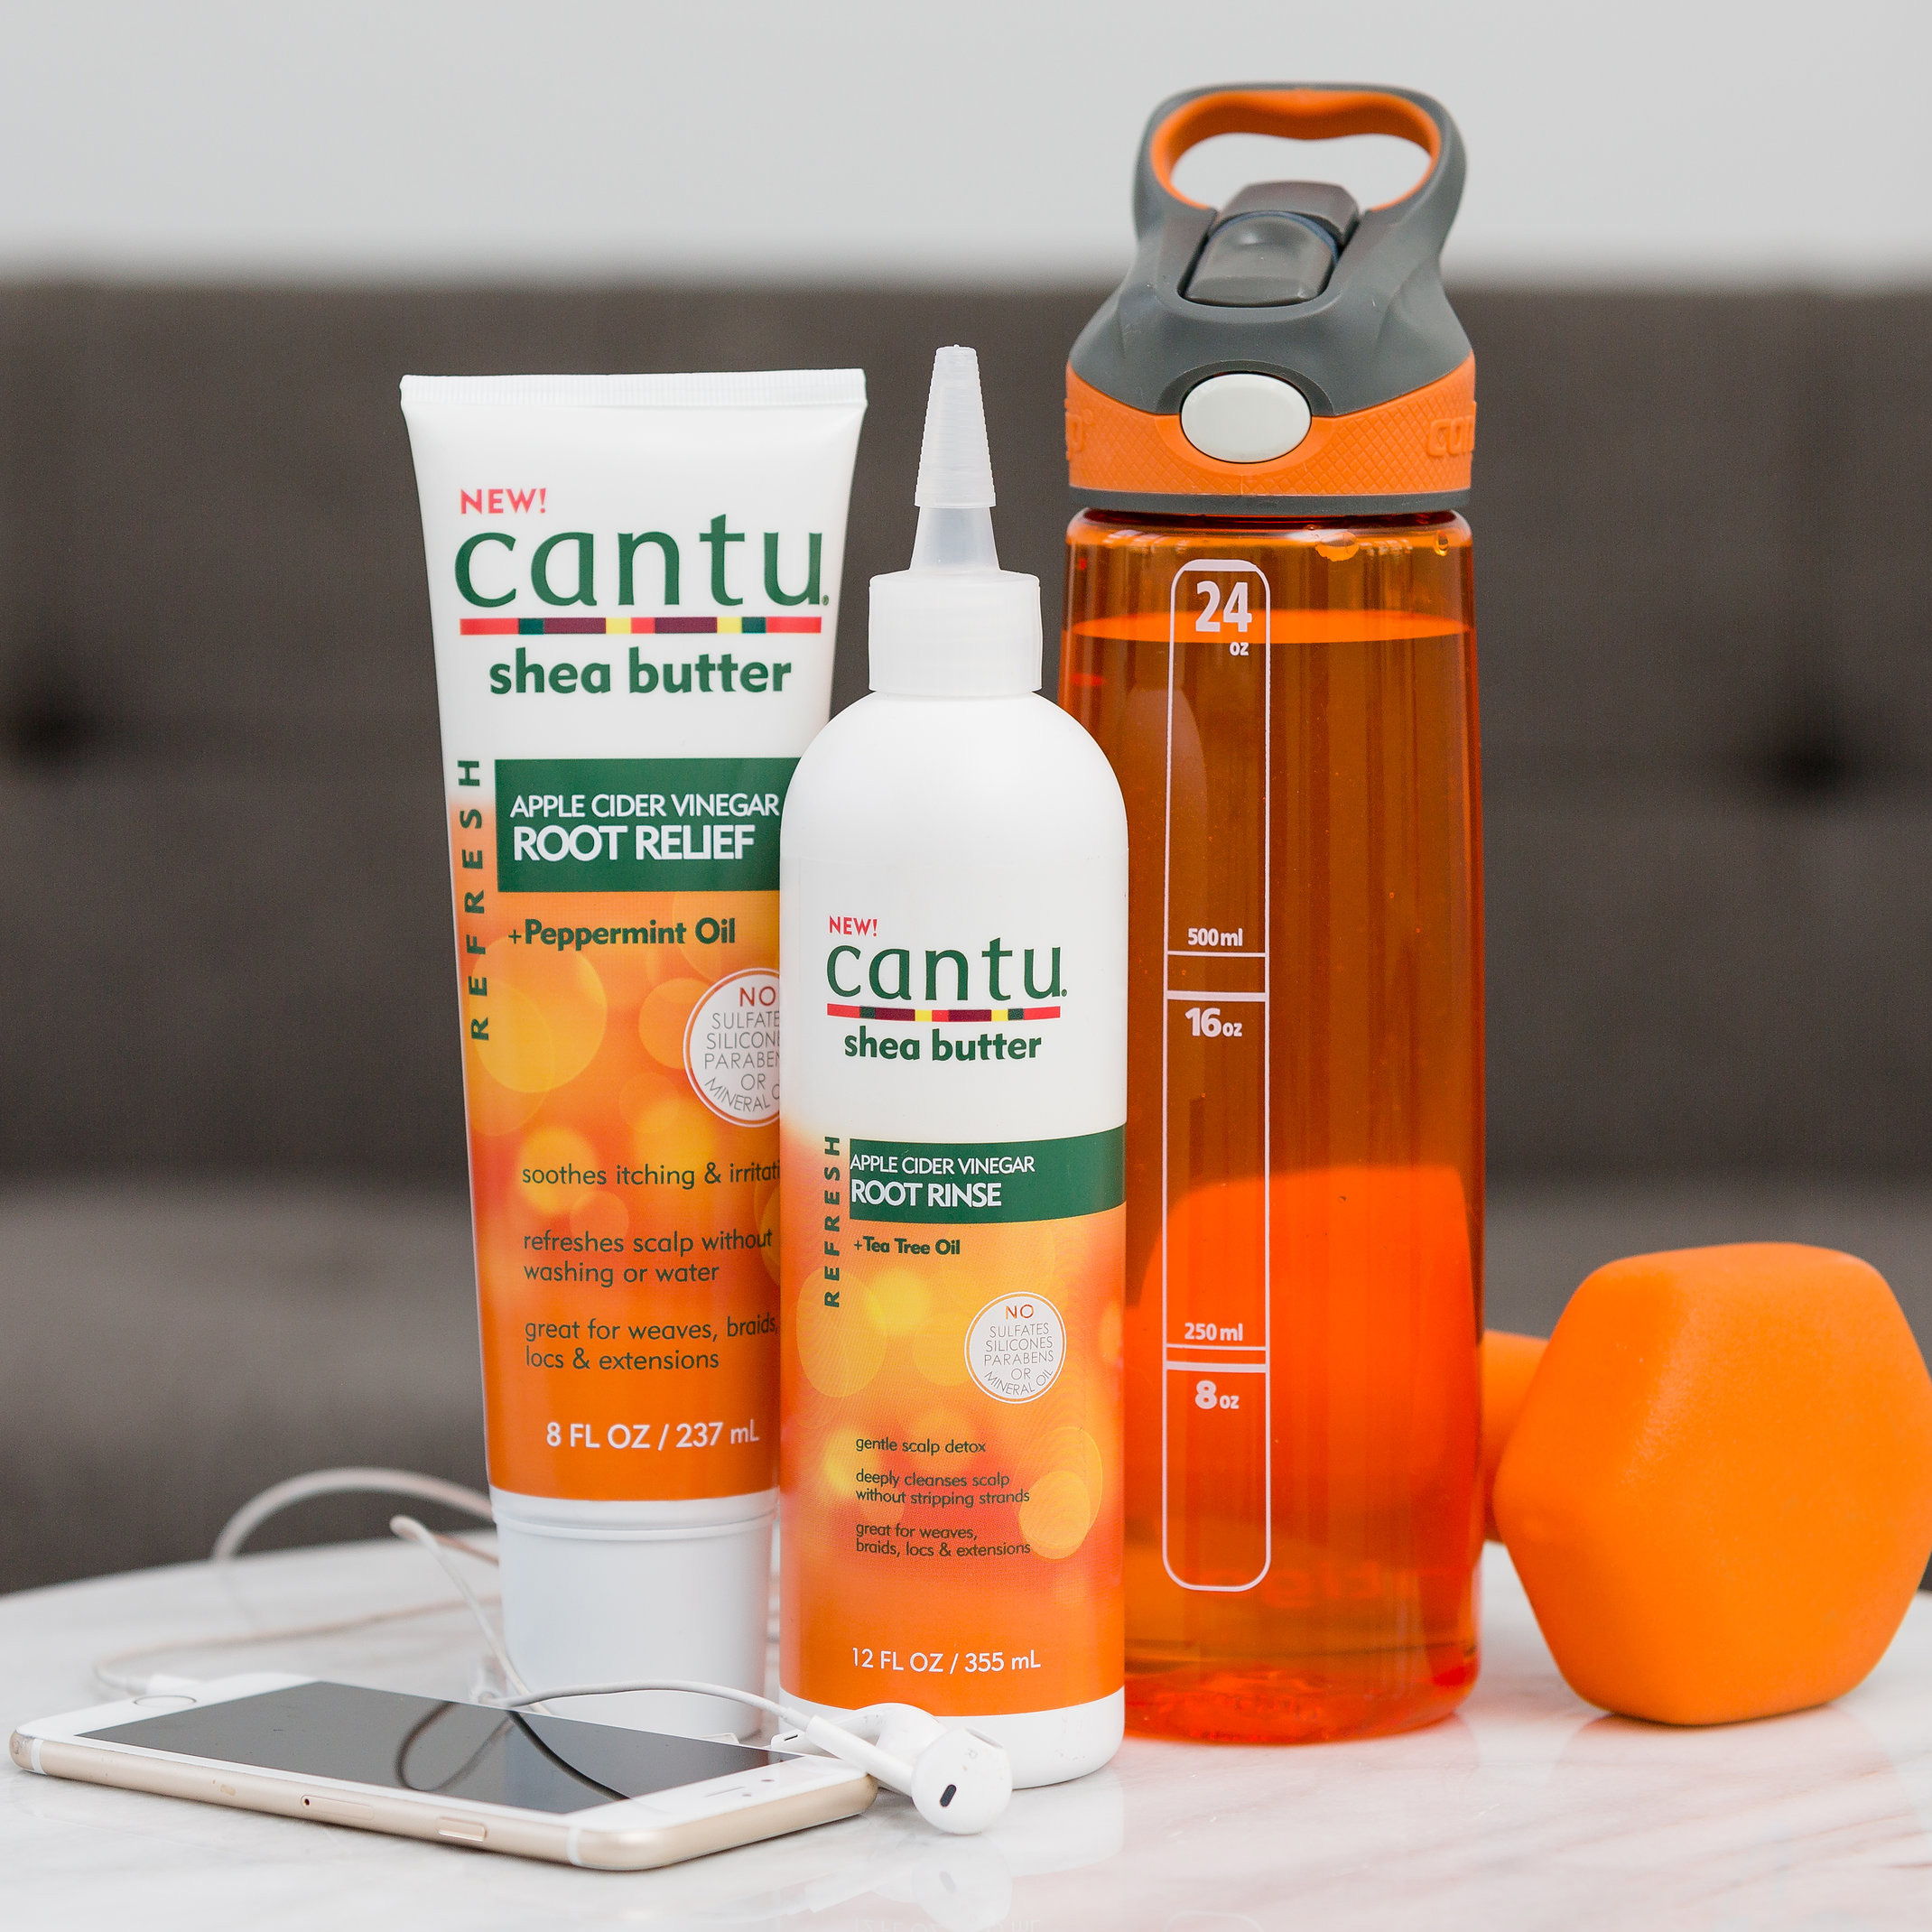 #CurlyAndFit Refresh Your Workout Hair With @CantuBeauty